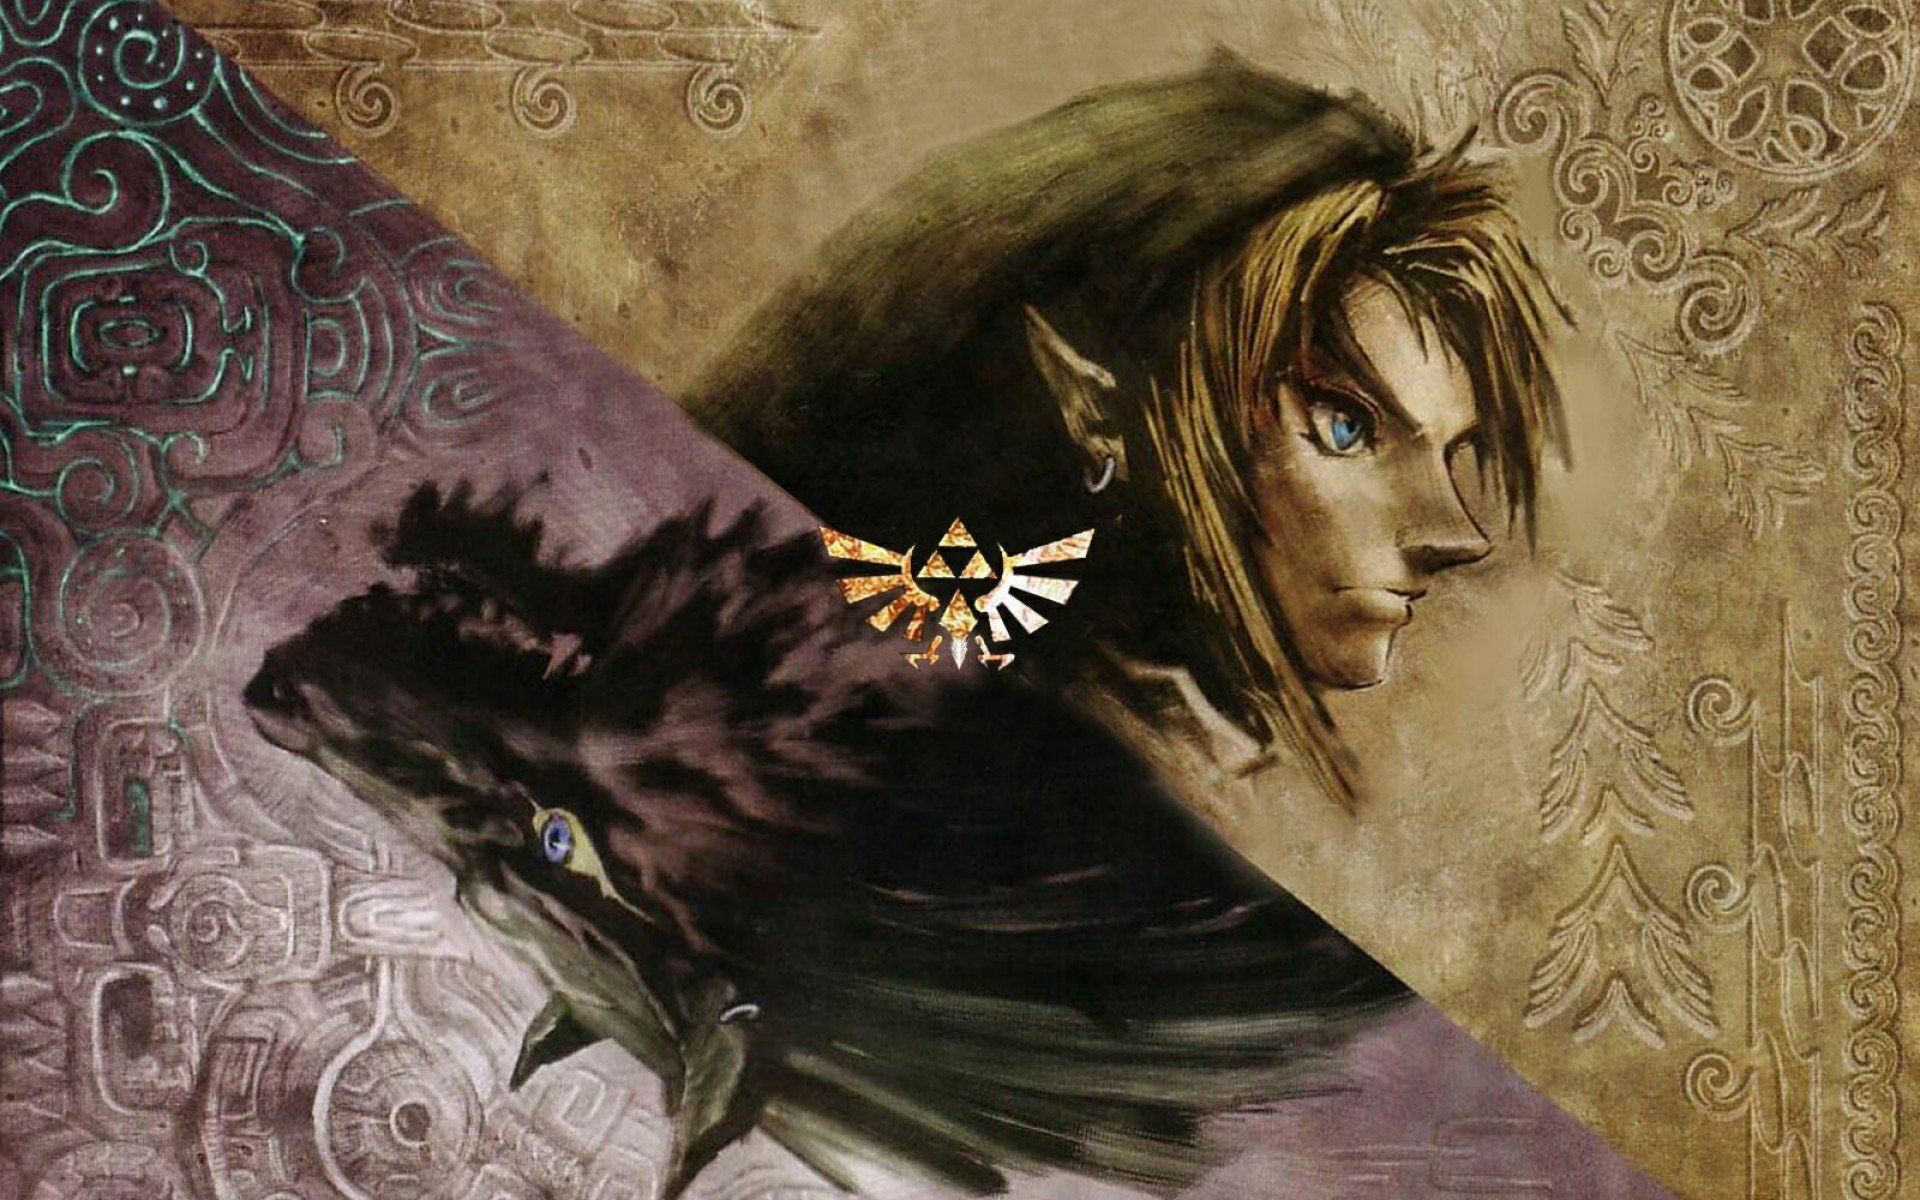 The Legend Of Zelda Twilight Princess Hd Wallpaper 25 1920 X 1200 Zelda Twilight Princess Twilight Princess Hd Twilight Princess